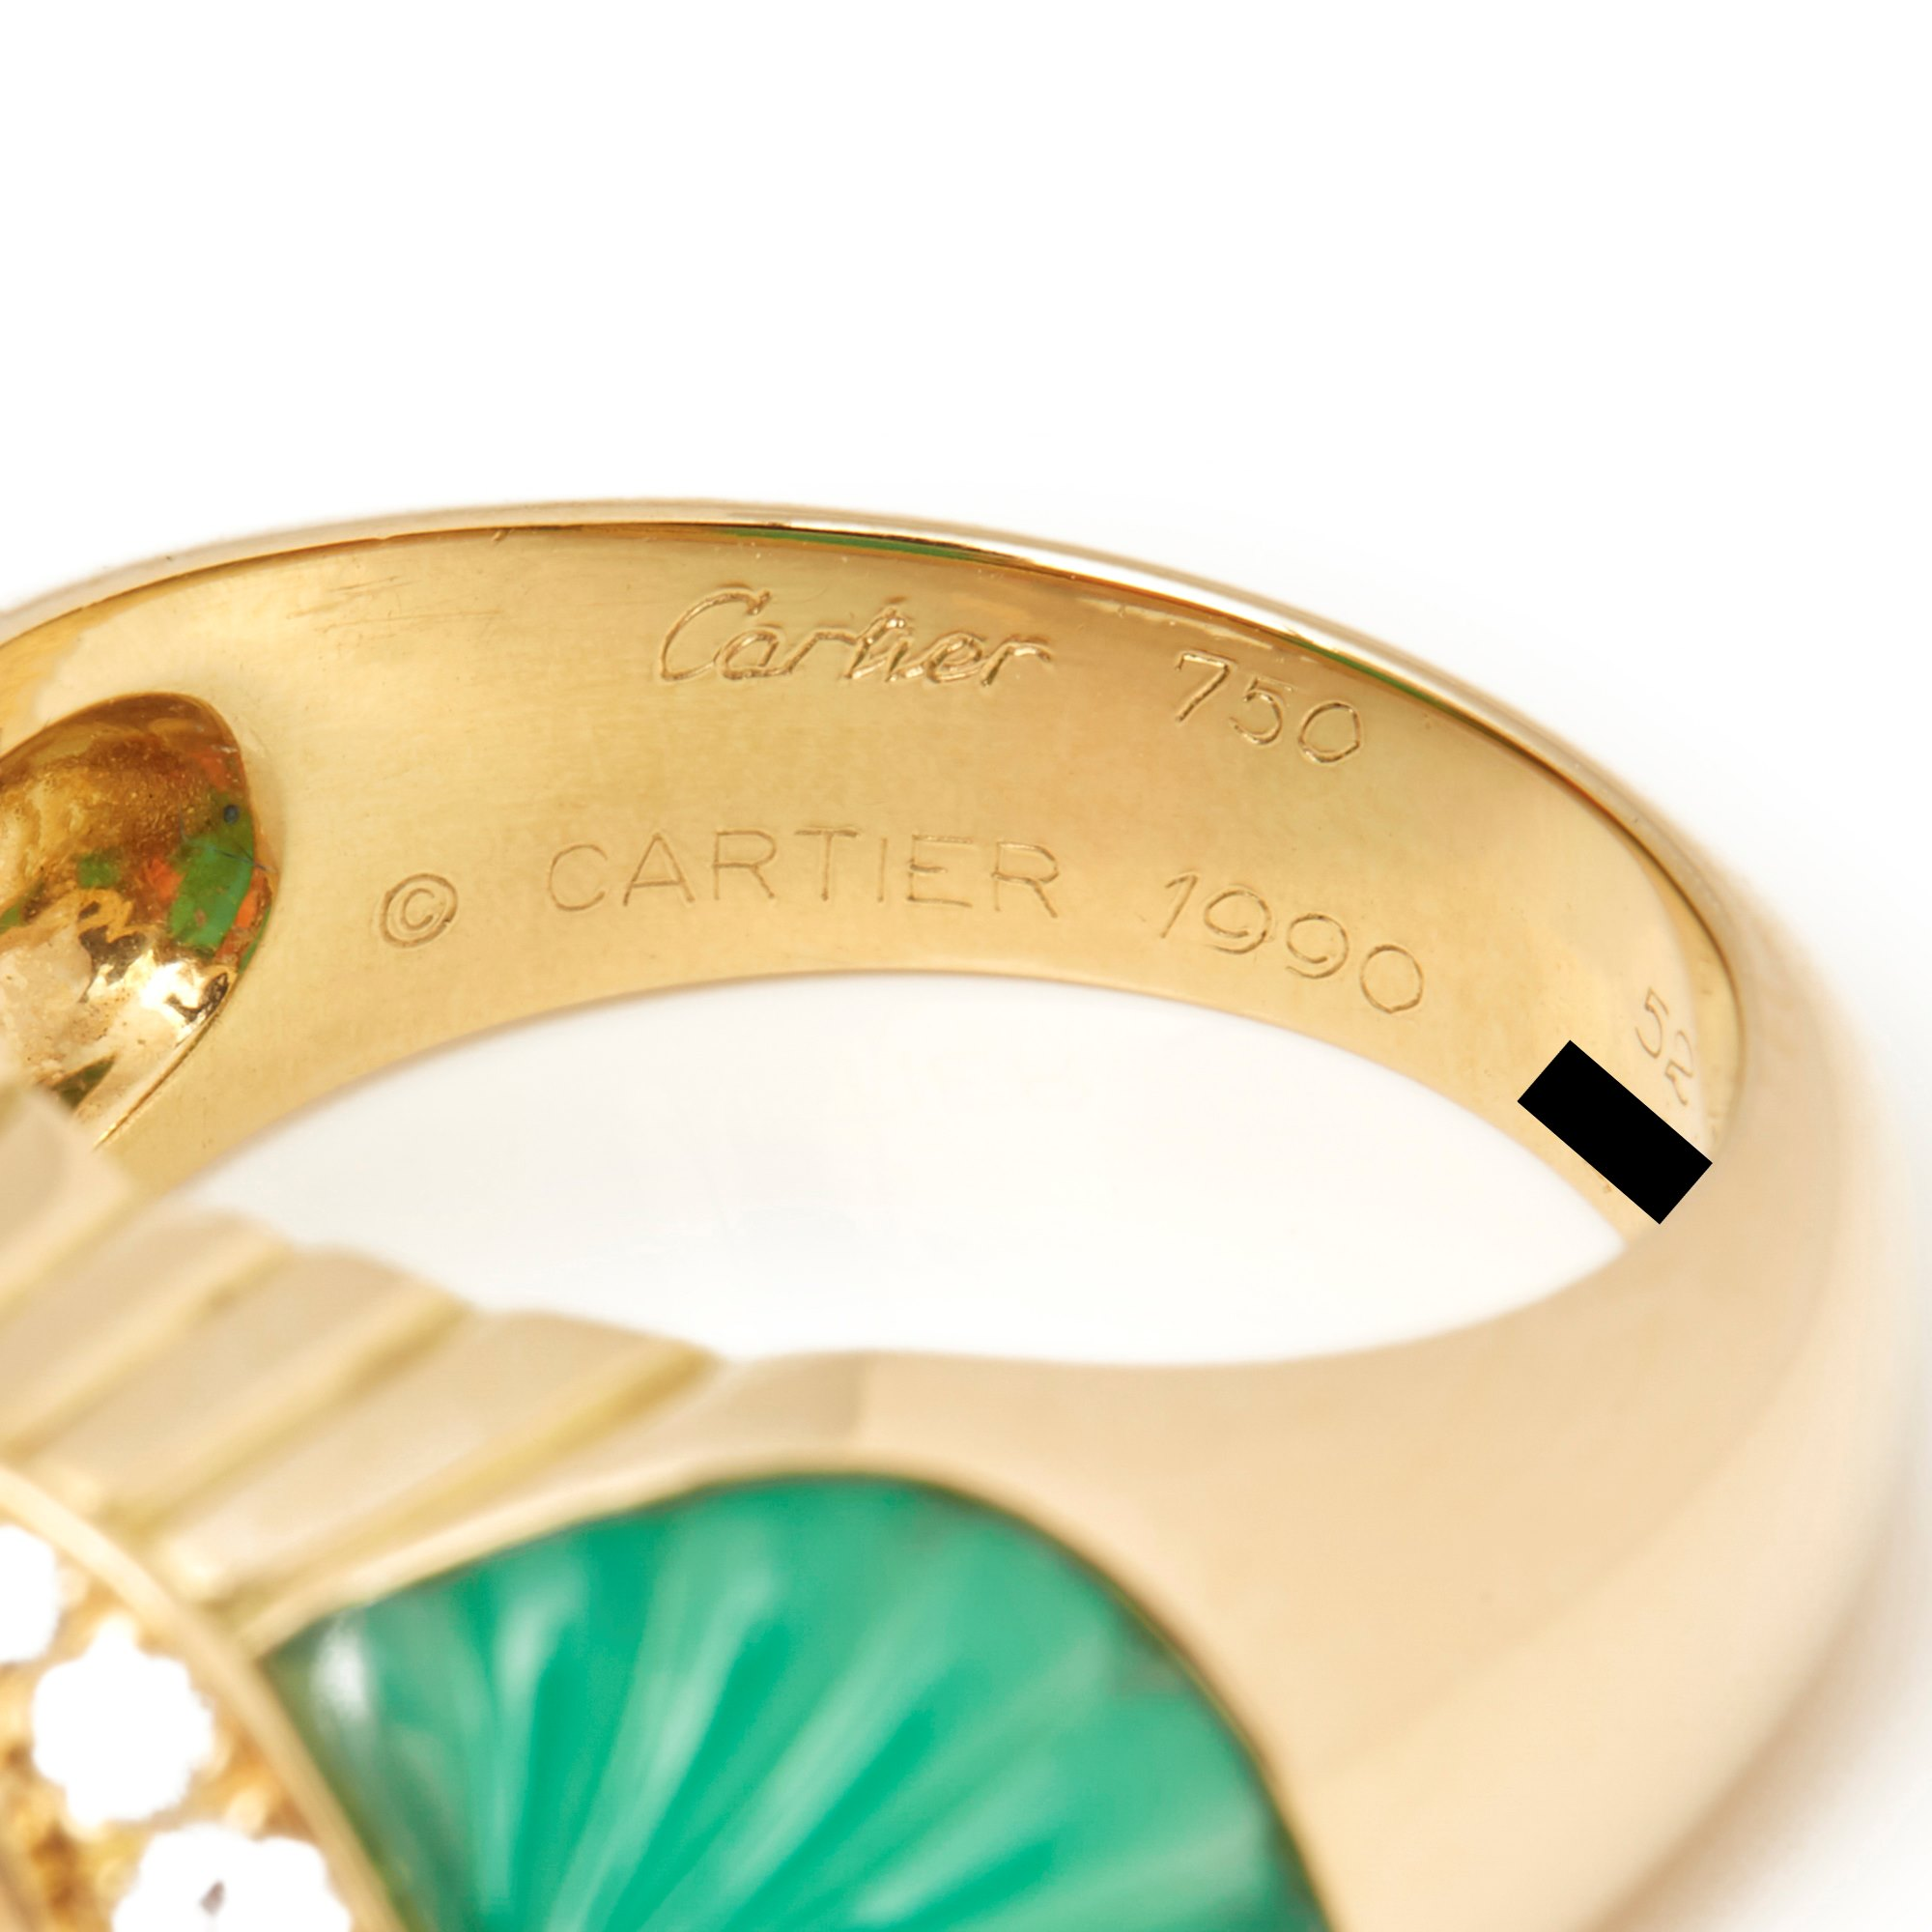 Cartier 18k Yellow Gold Chrysoprase, Coral & Diamond Ring